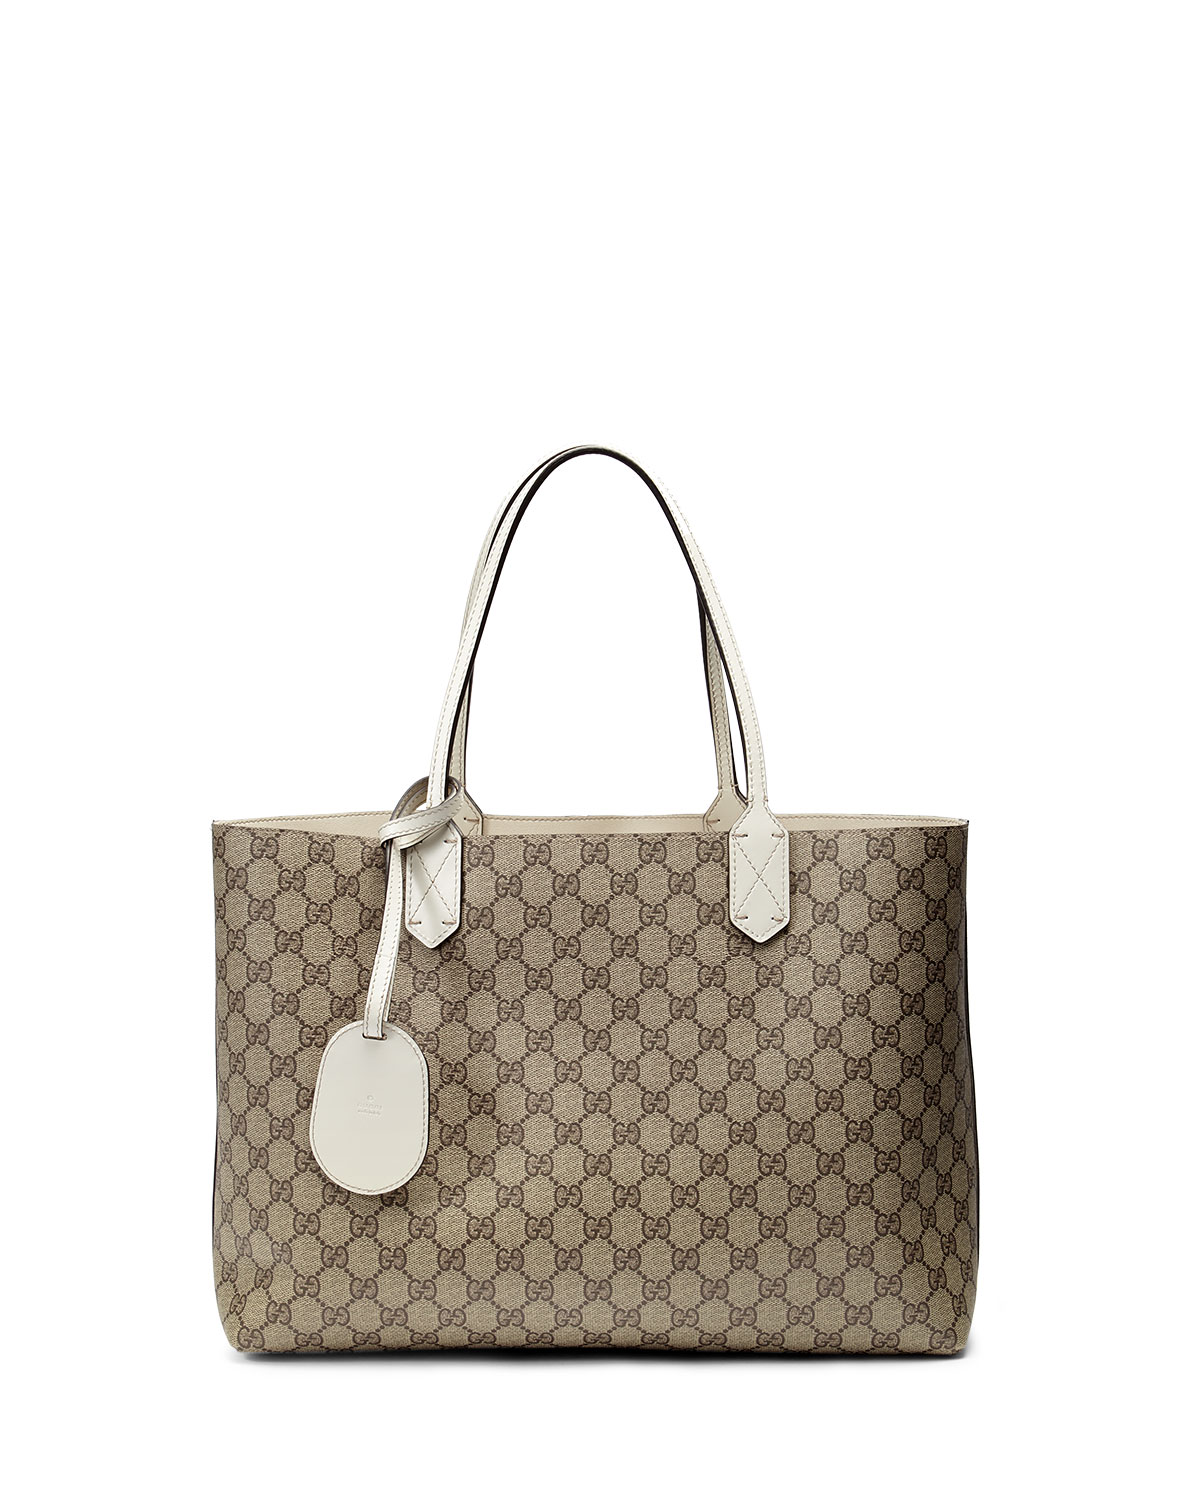 b937d0c70984 Gucci Reversible GG Leather Tote, Brown/White | Neiman Marcus